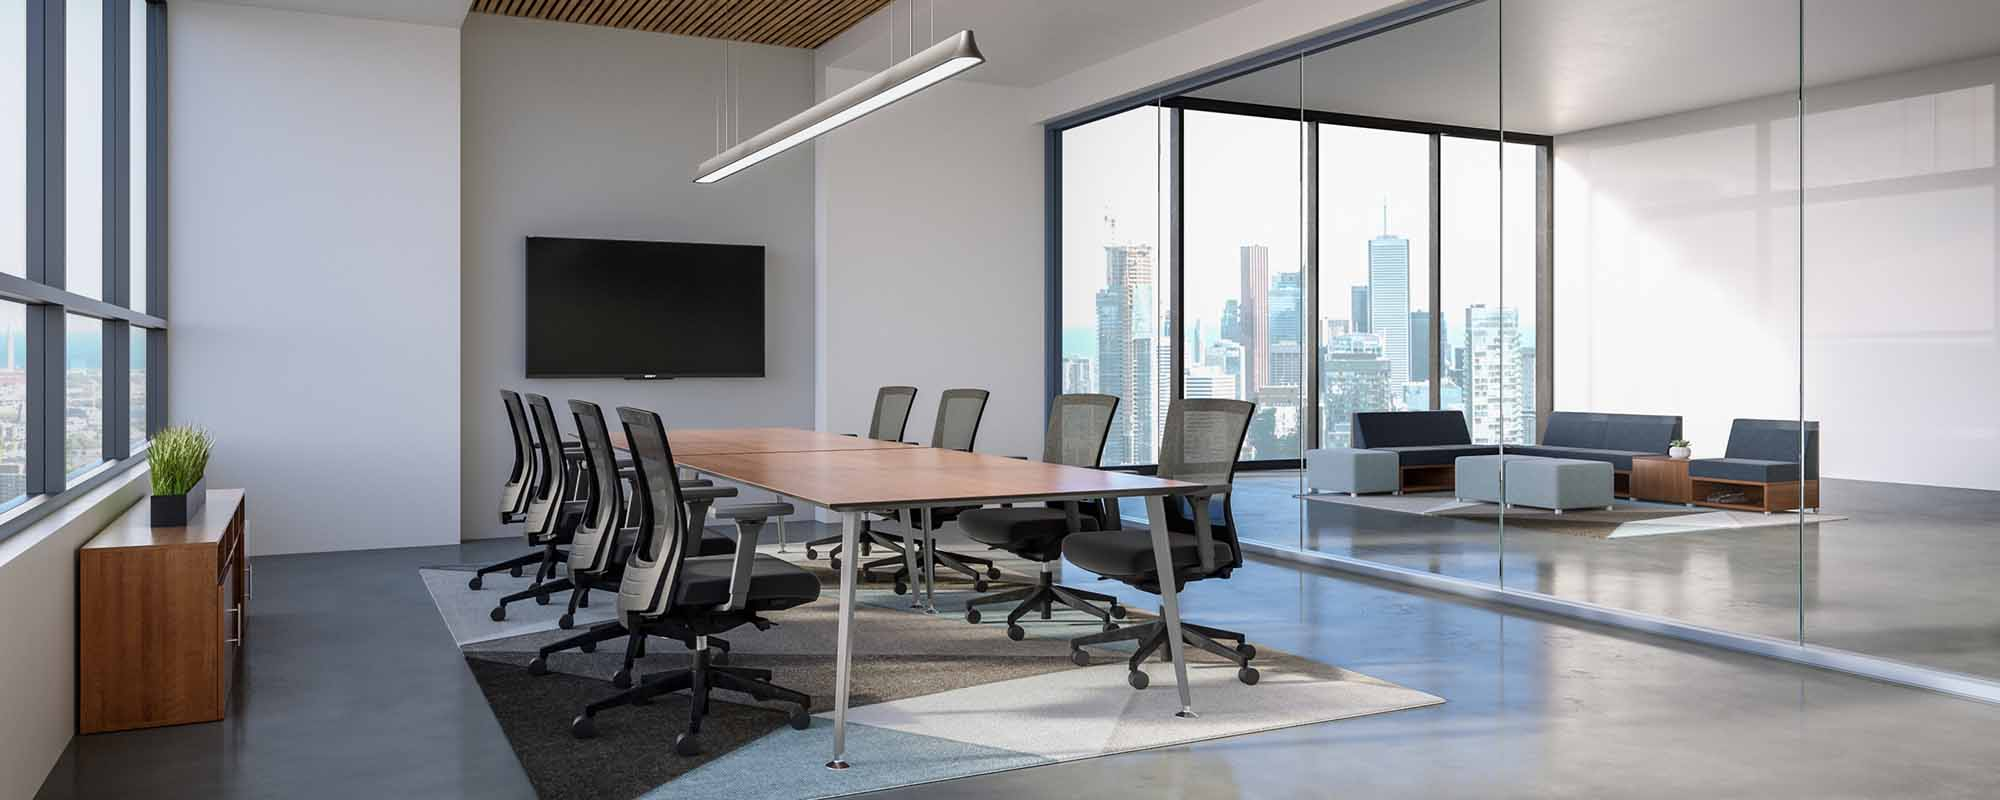 hero-slider_0002_conference-room-with-day-to-day-table-upton-seating-and-lb-lounge_lg.jpg